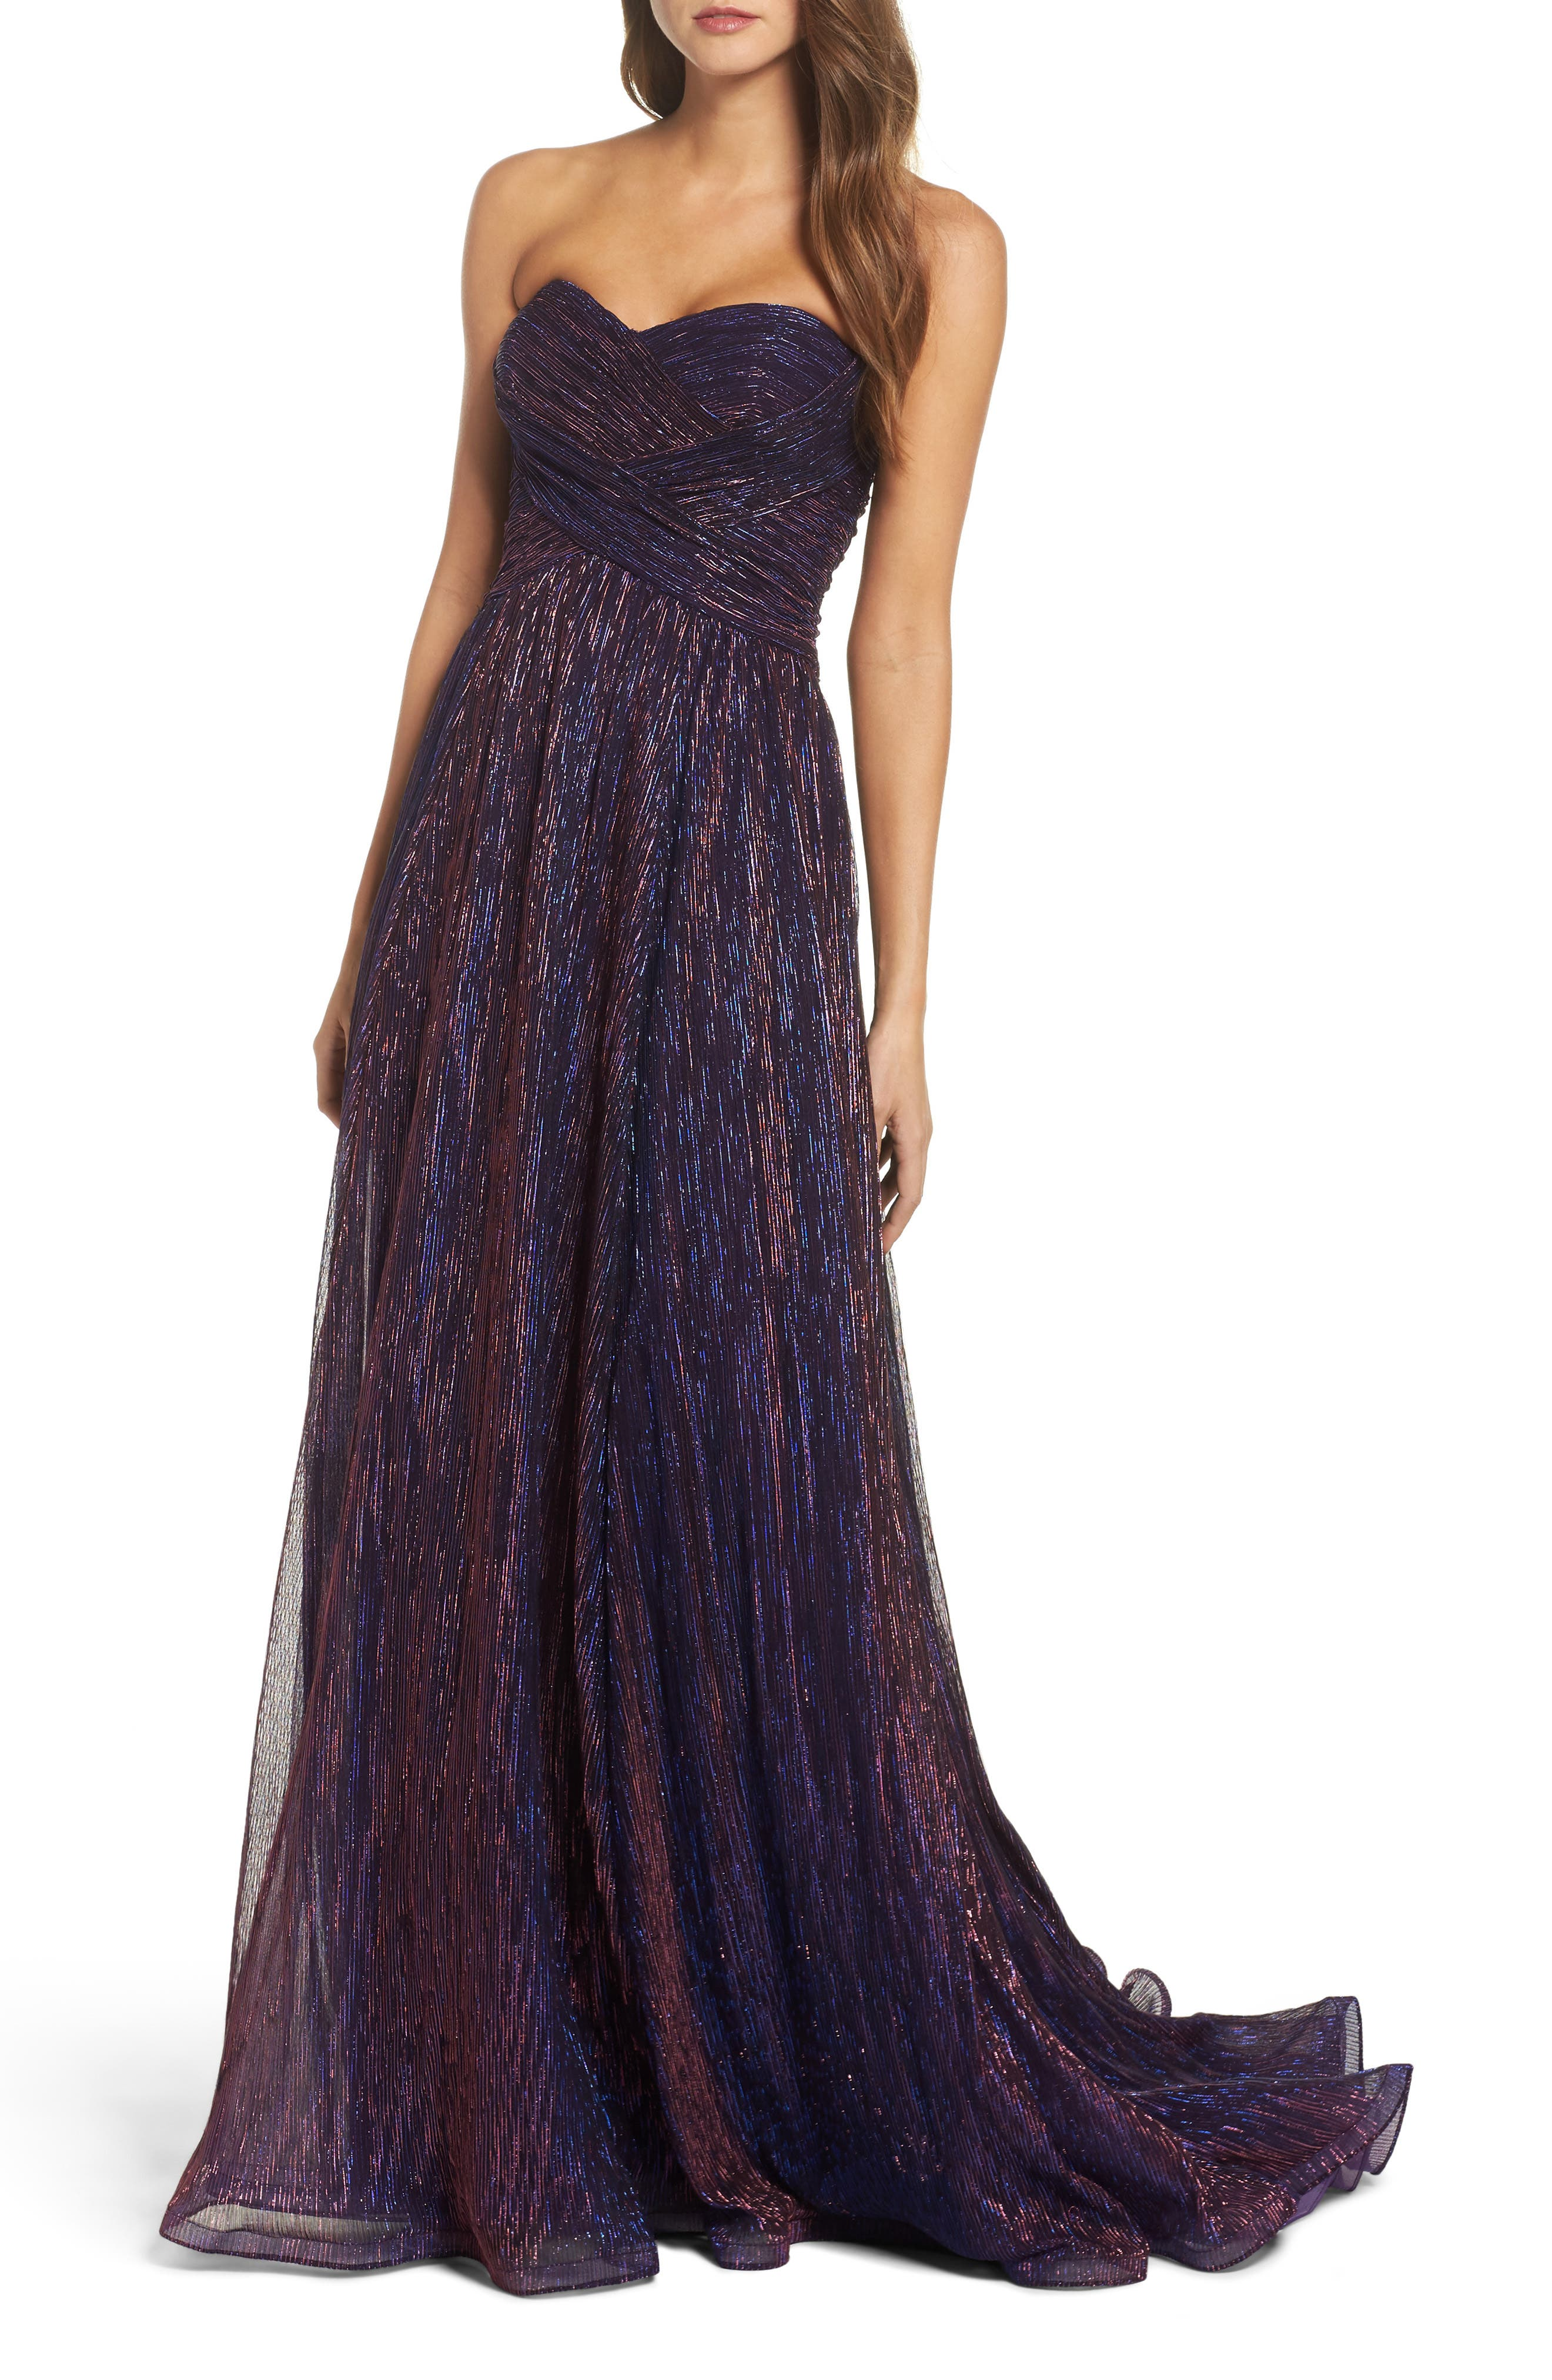 Metallic Strapless A-Line Gown,                             Main thumbnail 1, color,                             Purple/ Multi